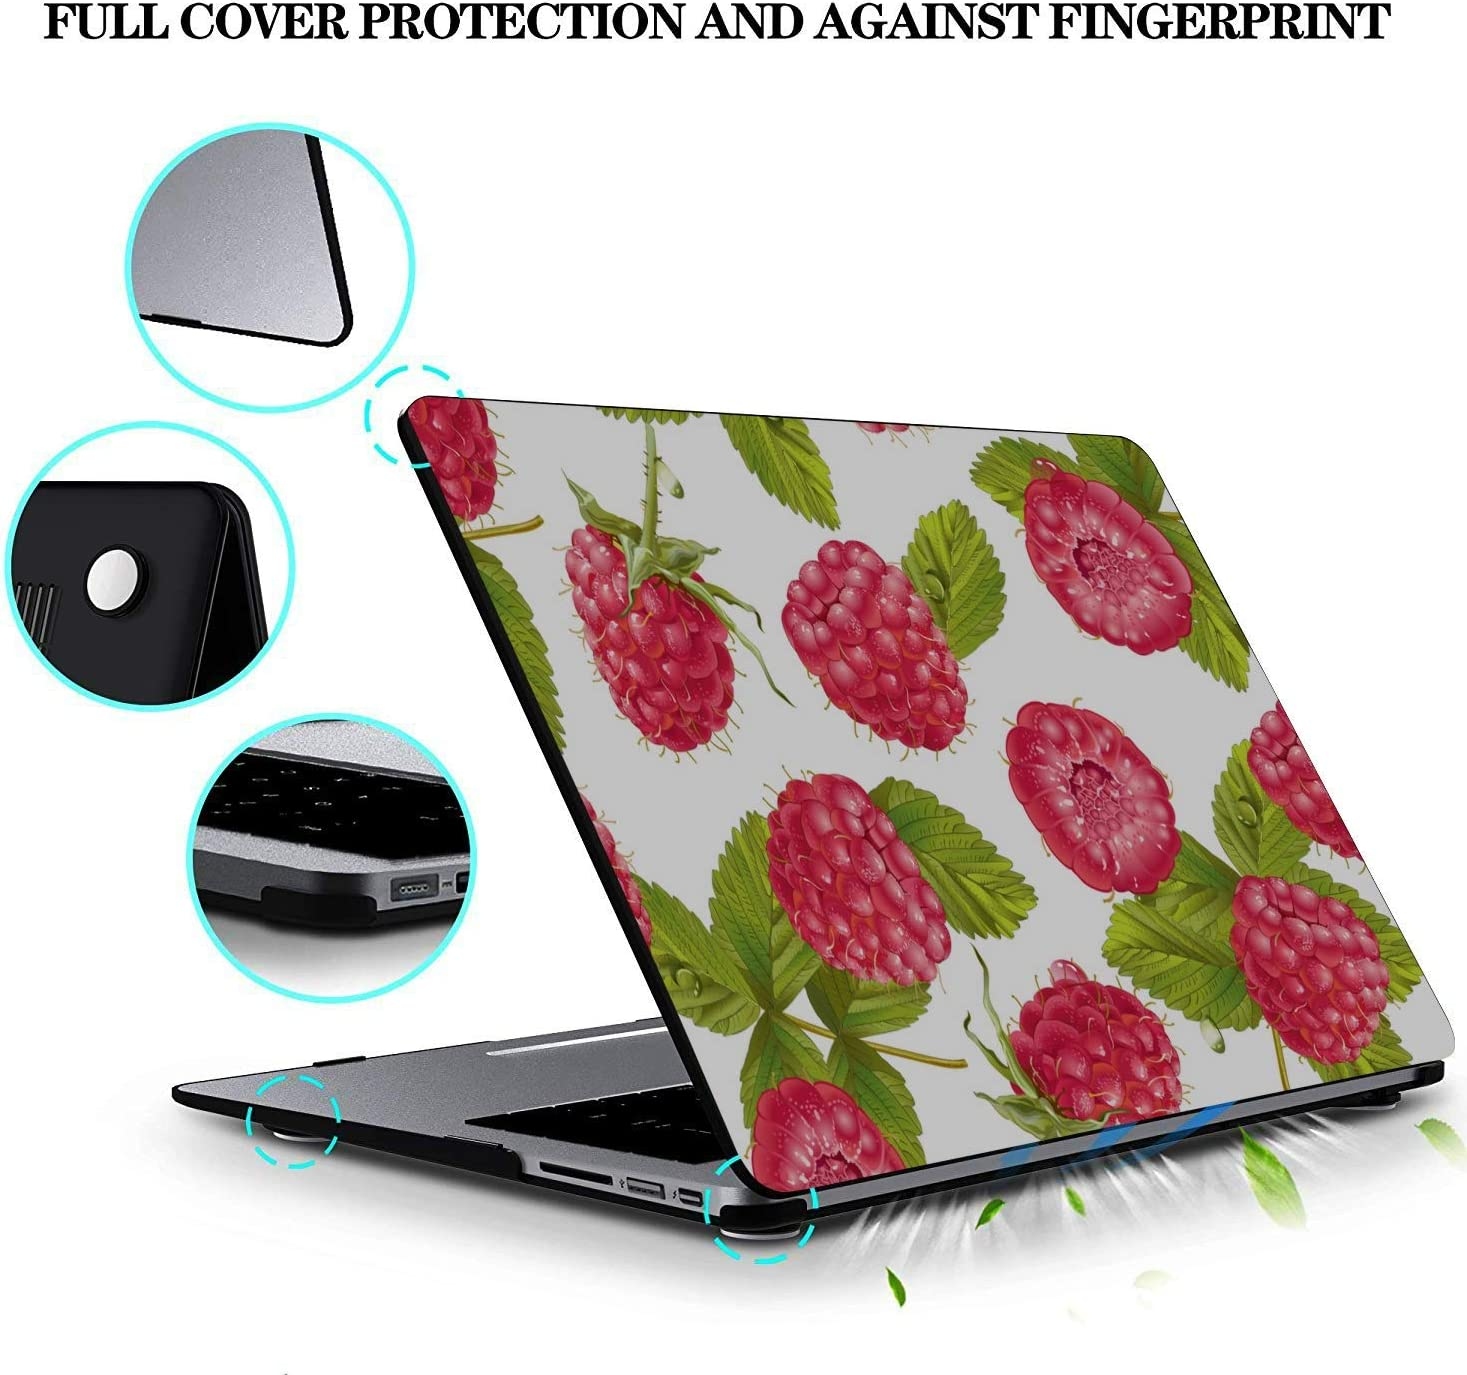 MacBook Pro Shell Summer Sweet Sour Create Berry Fruit Plastic Hard Shell Compatible Mac Air 11 Pro 13 15 Mac 13 Inch Case Protection for MacBook 2016-2019 Version